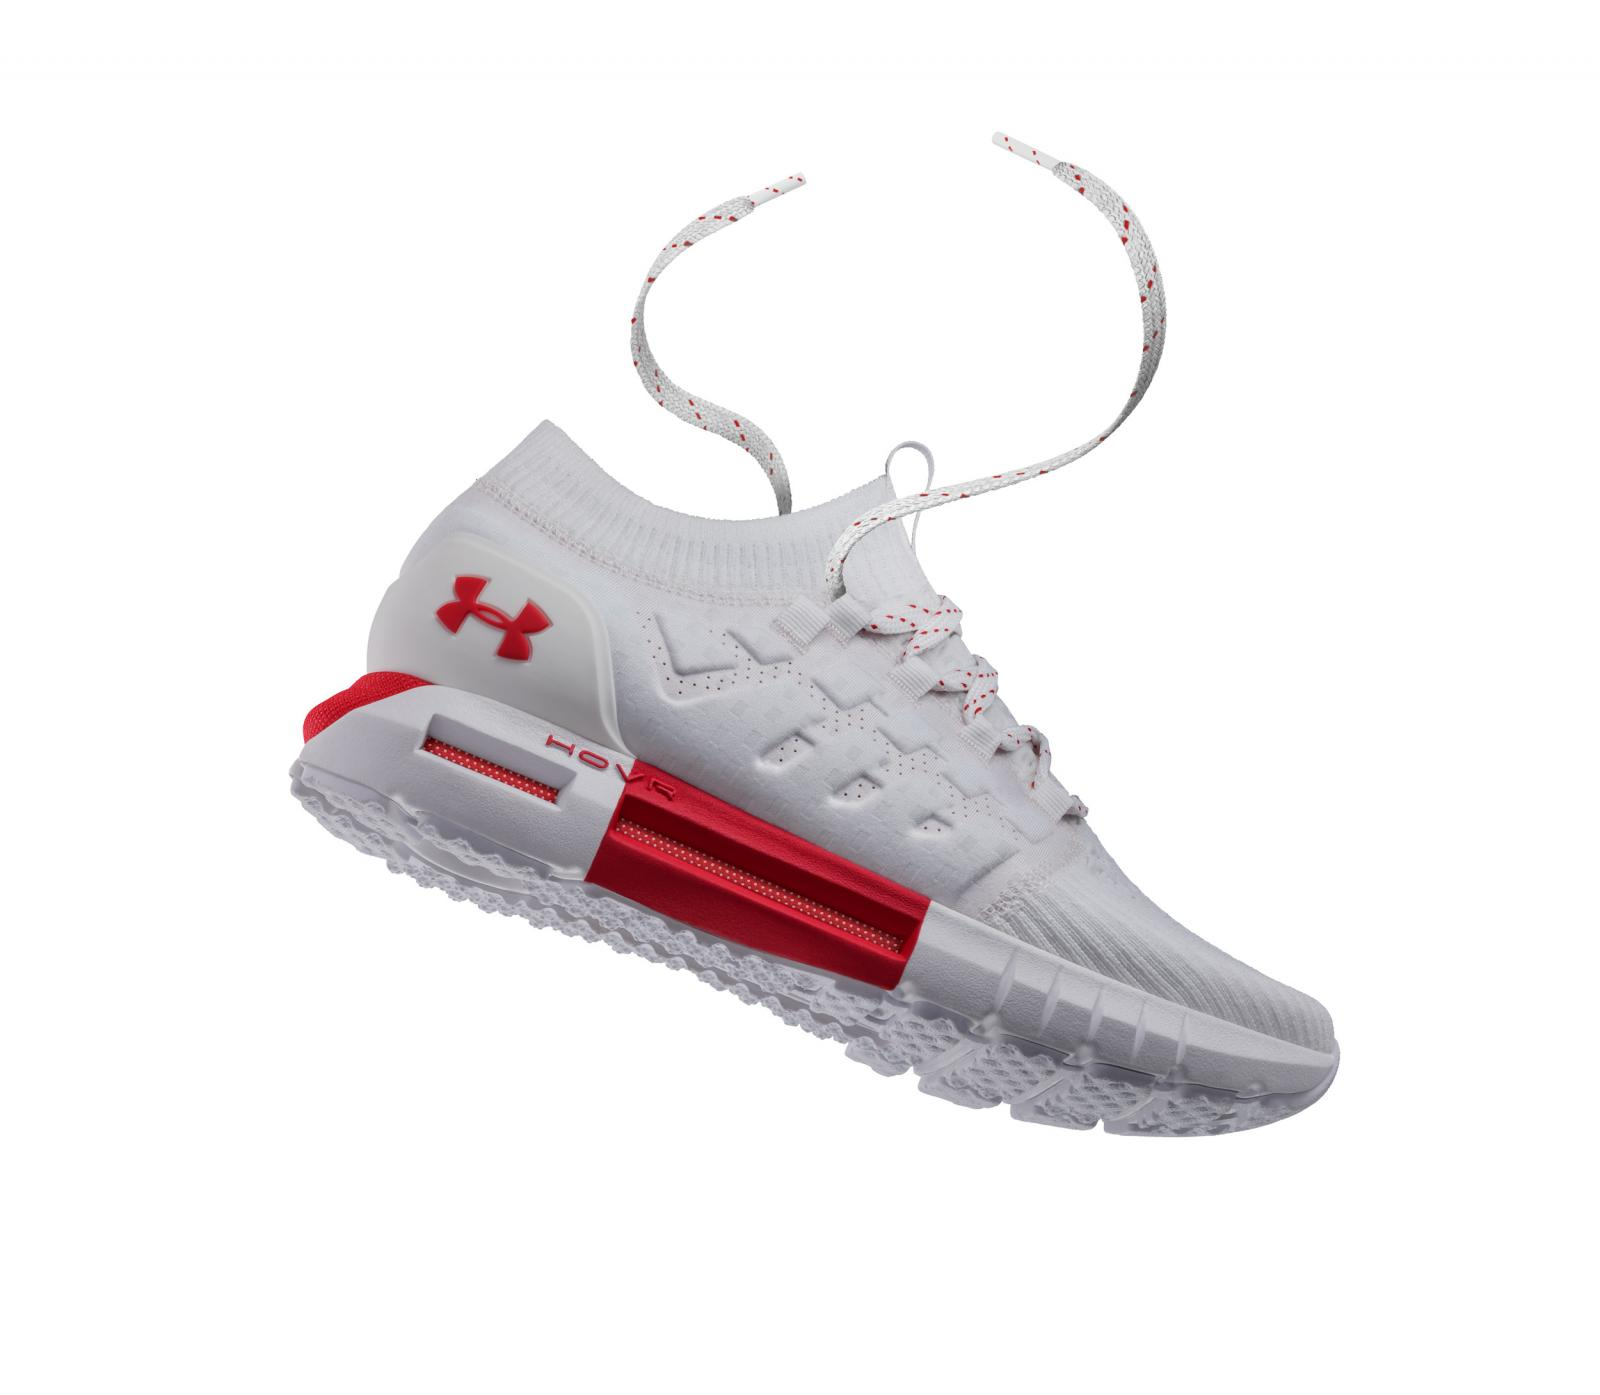 New UA HOVR Phantom White/Red